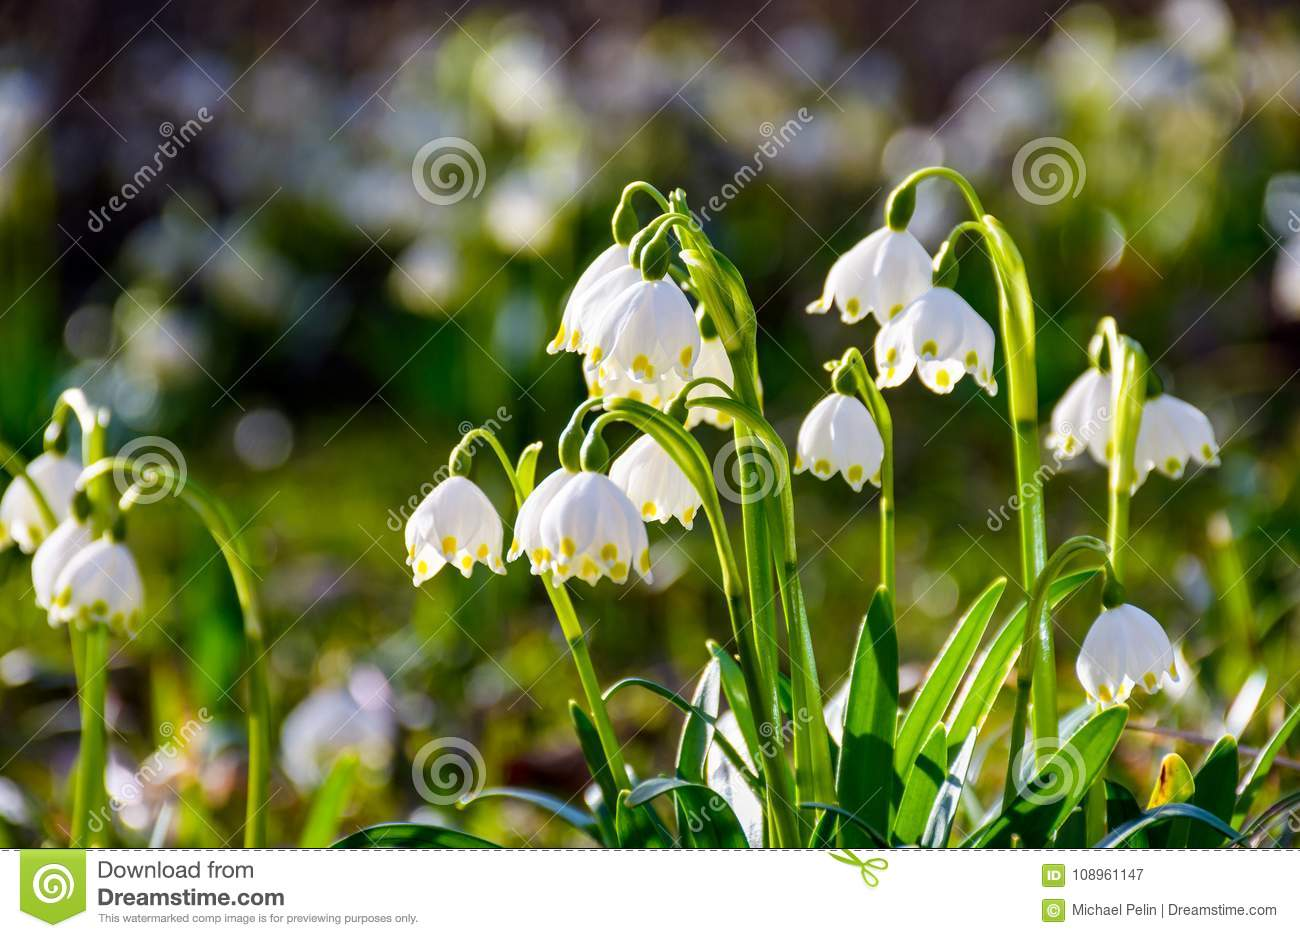 Beautiful blooming of white spring snowflake stock image image of beautiful blooming of white spring snowflake flowers in springtime snowflake also called summer snowflake or loddon lily or leucojum vernum on a beautiful mightylinksfo